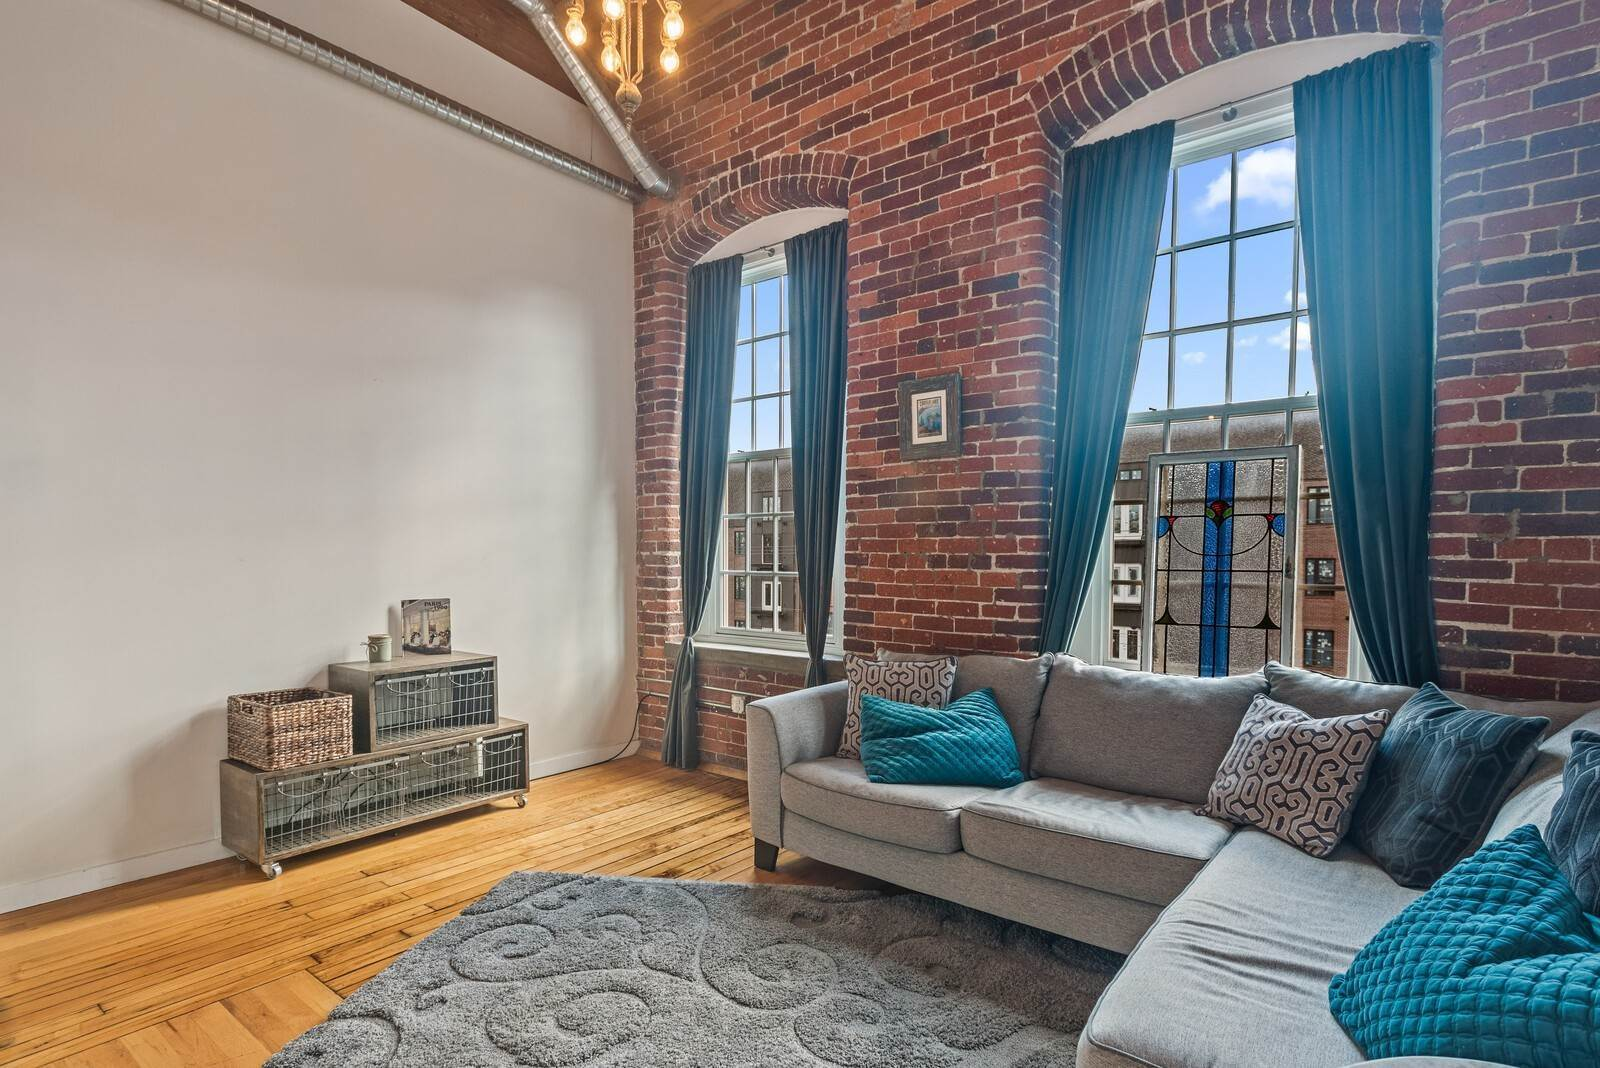 Lofts for Sale at 1350 Rosa L Parks Blvd #433 Nashville, Tennessee 37208 United States